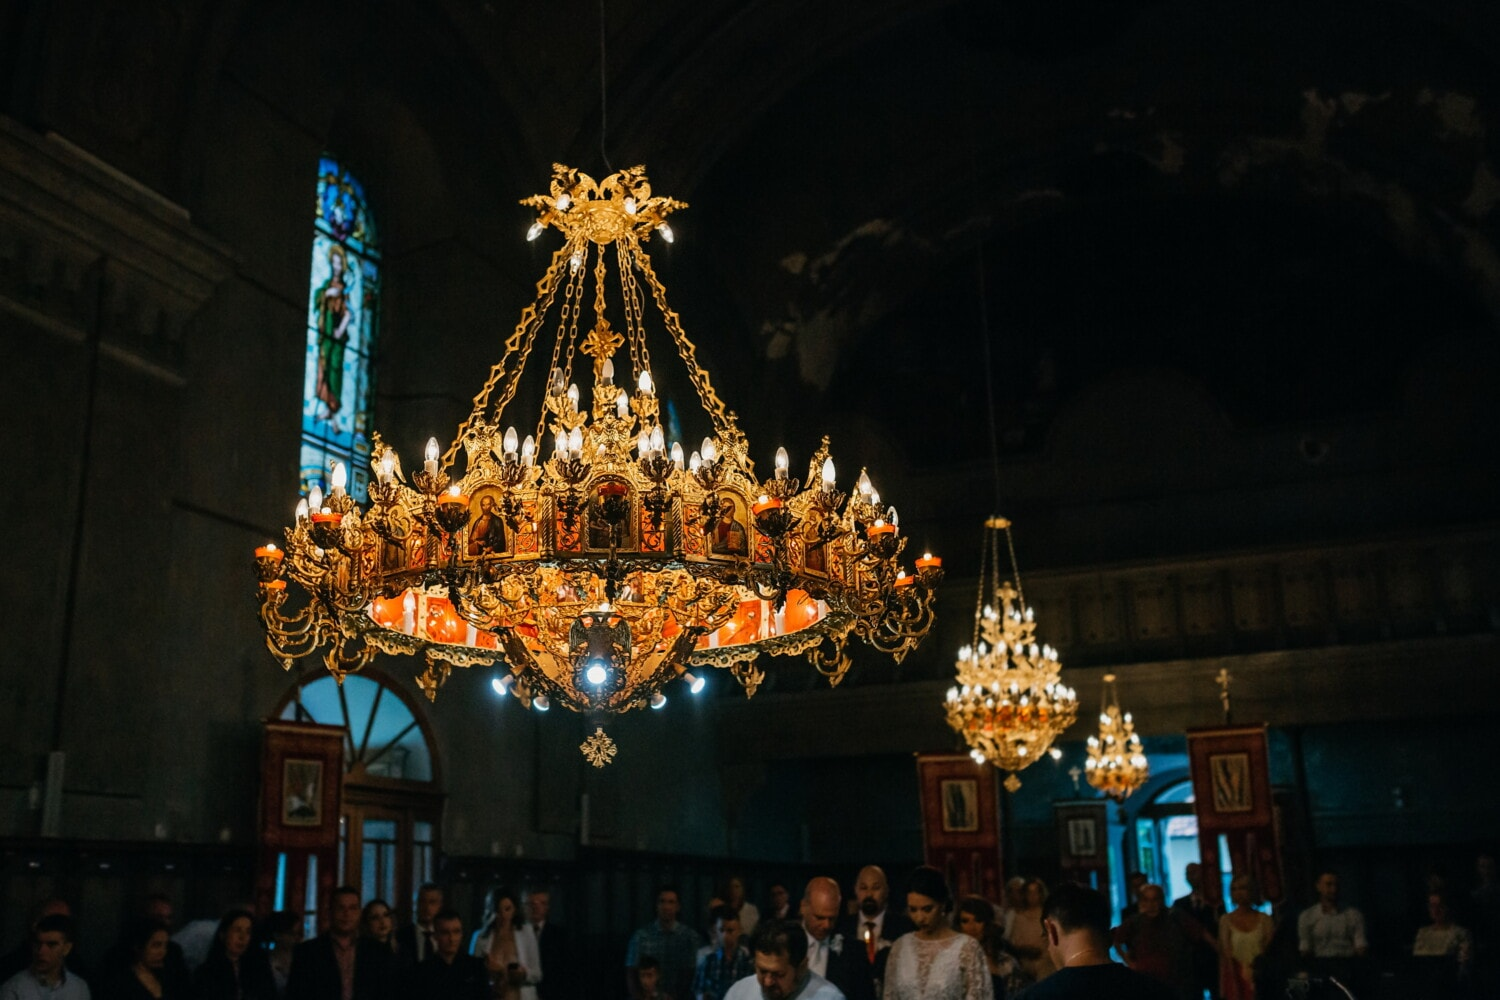 russian, church, orthodox, ceremony, wedding, crowd, people, religion, chandelier, architecture